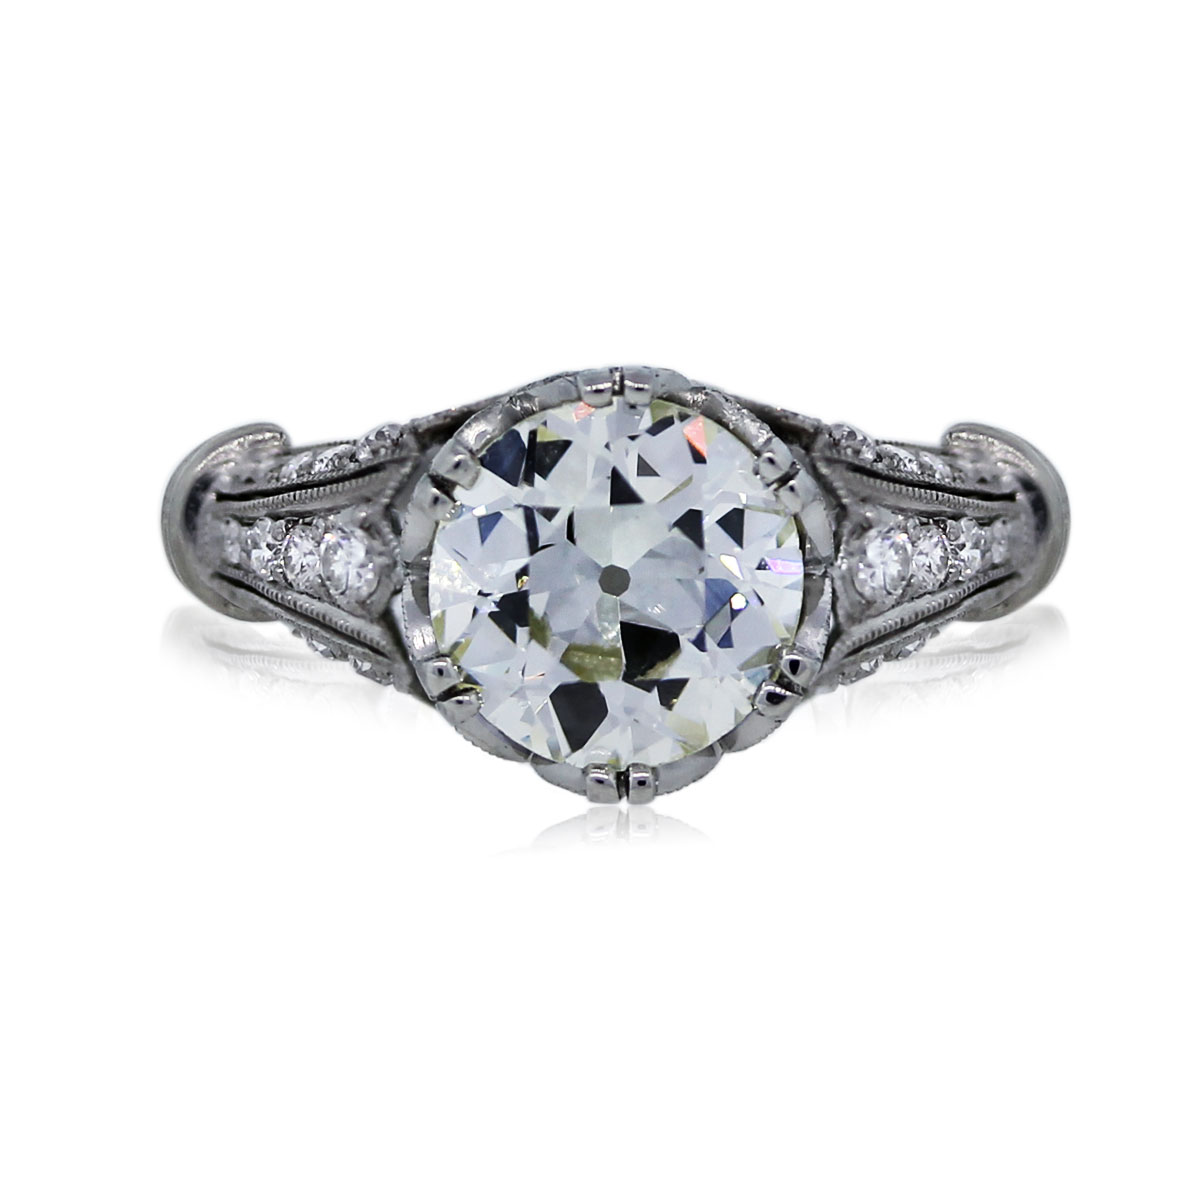 You Are Viewing This 245ct Old European Cut Diamond Engagement Ring! Vintage  Style Diamond Engagement Ring